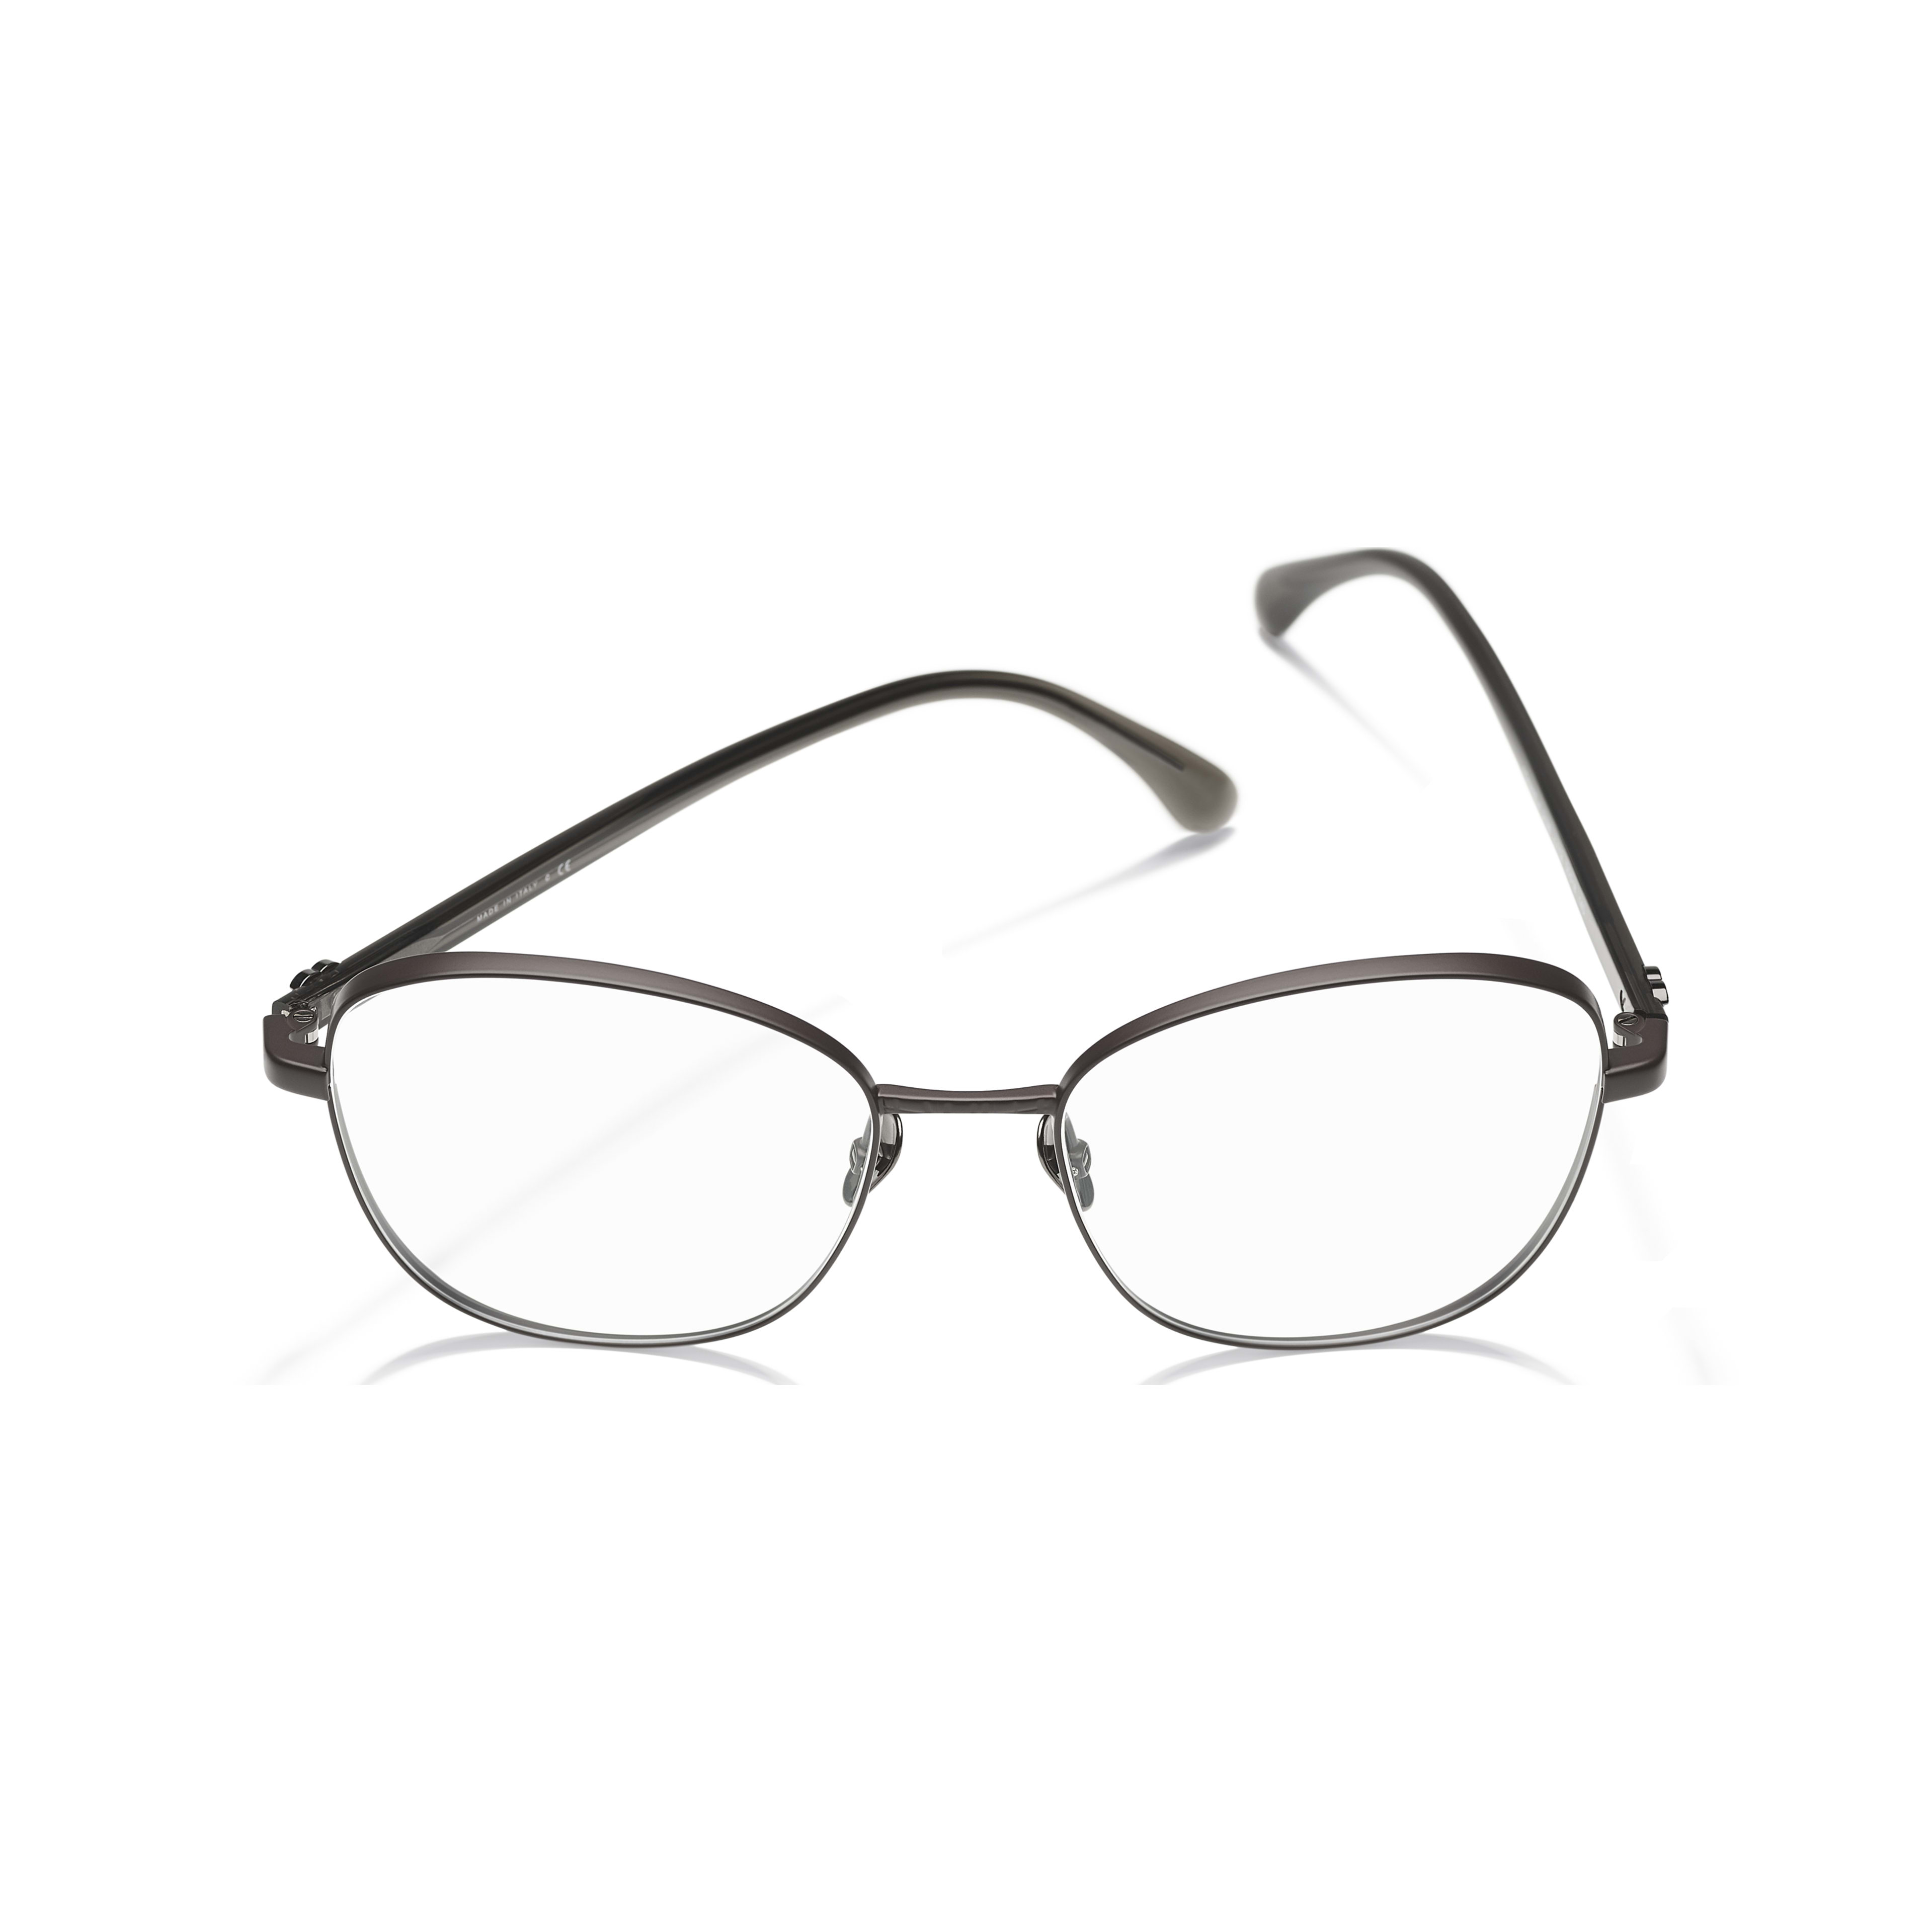 Pantos Eyeglasses - Brown - Acetate & Metal - CHANEL - Extra view - see standard sized version